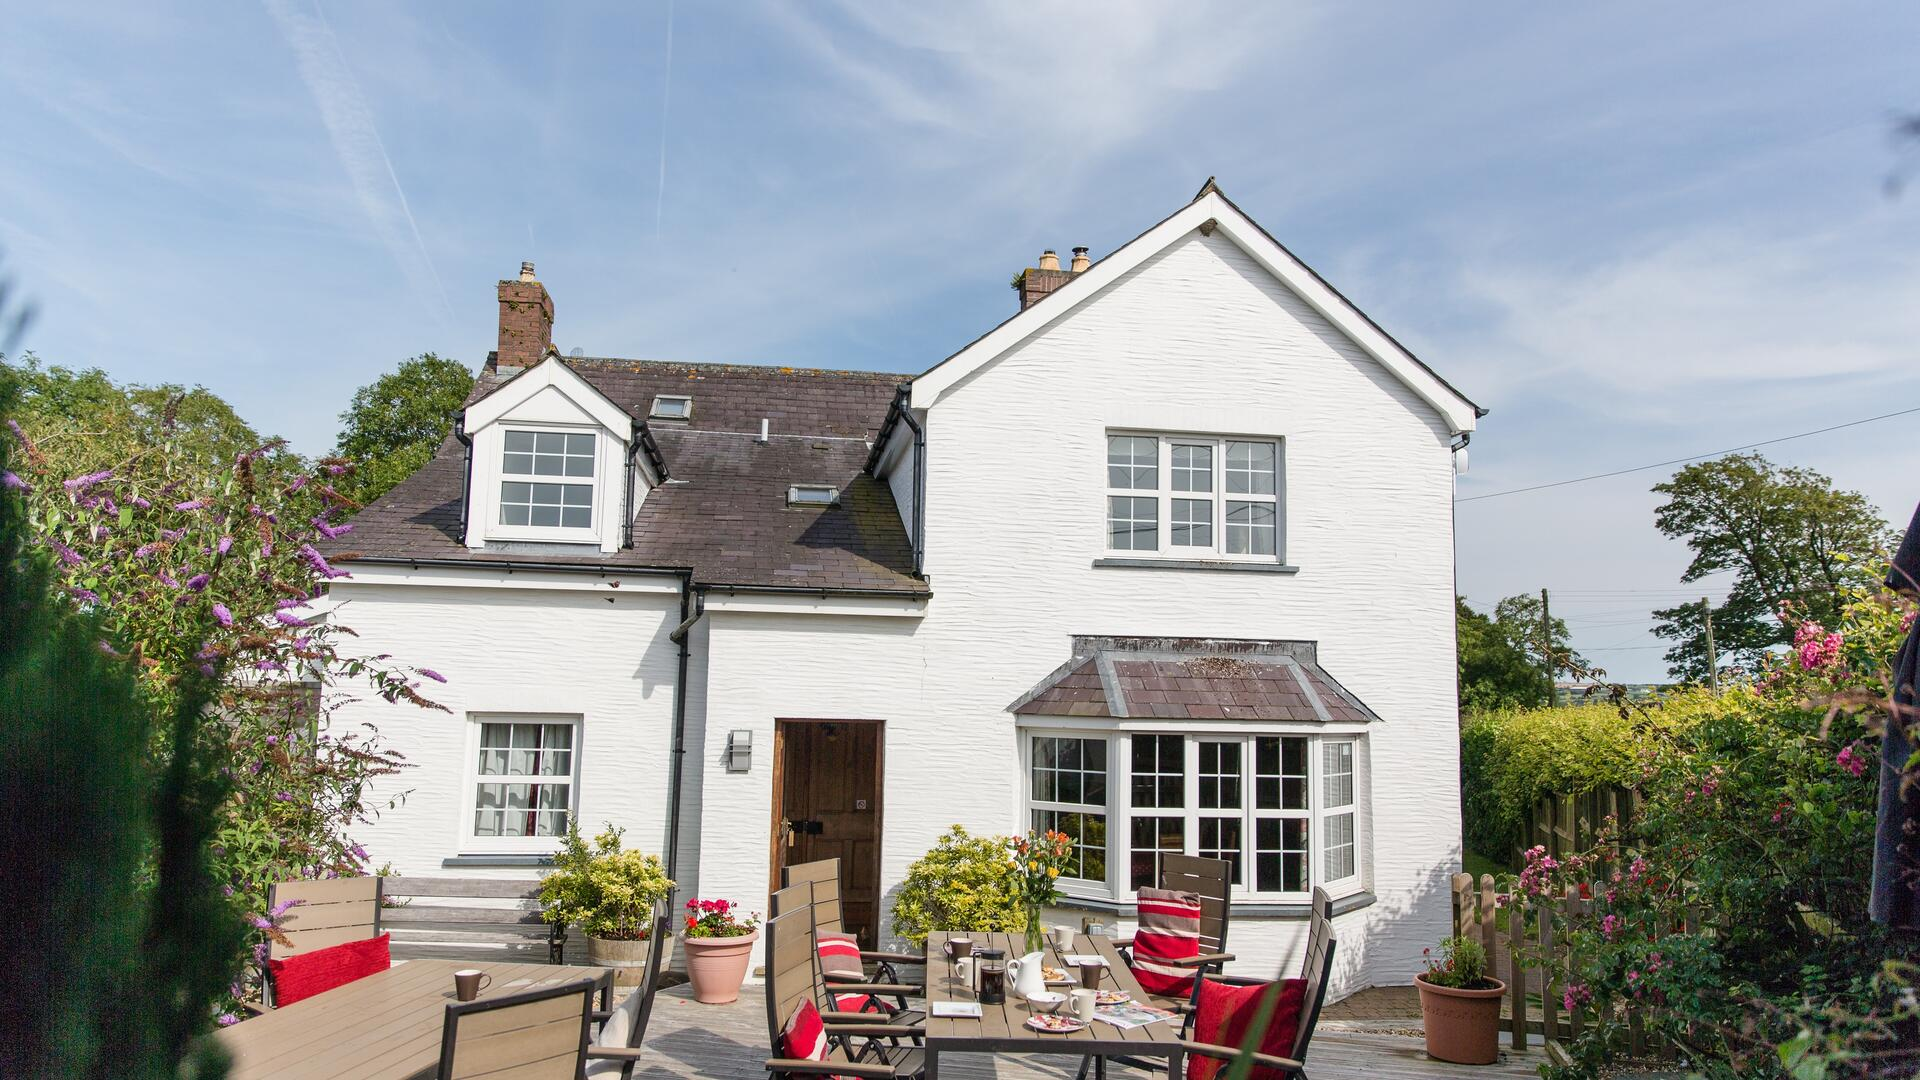 6 Bedroom Cottage/shared grounds in Wales, United Kingdom